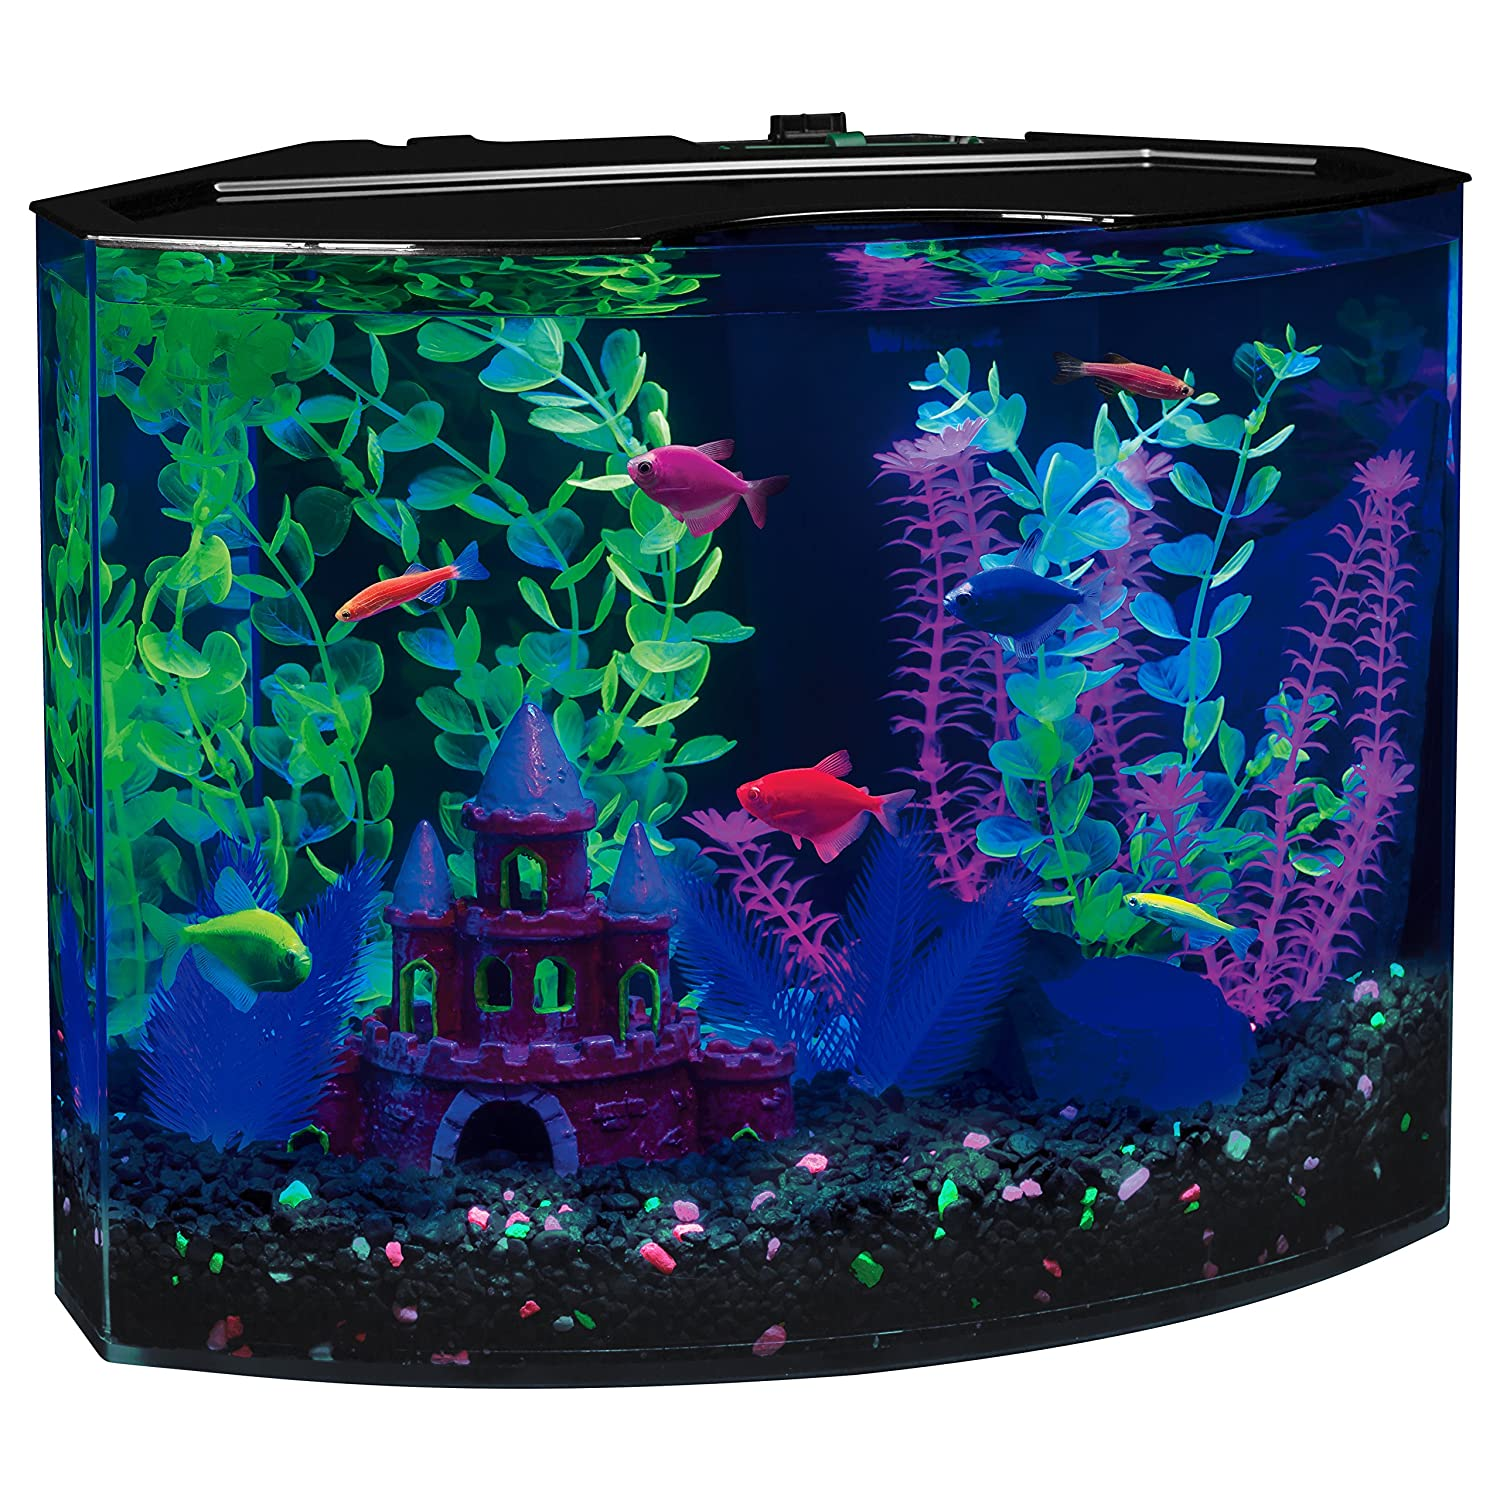 Aquarium fish 5 gallon tank - Amazon Com Glofish 29045 Aquarium Kit With Blue Led Light 5 Gallon Aquarium Starter Kits Pet Supplies